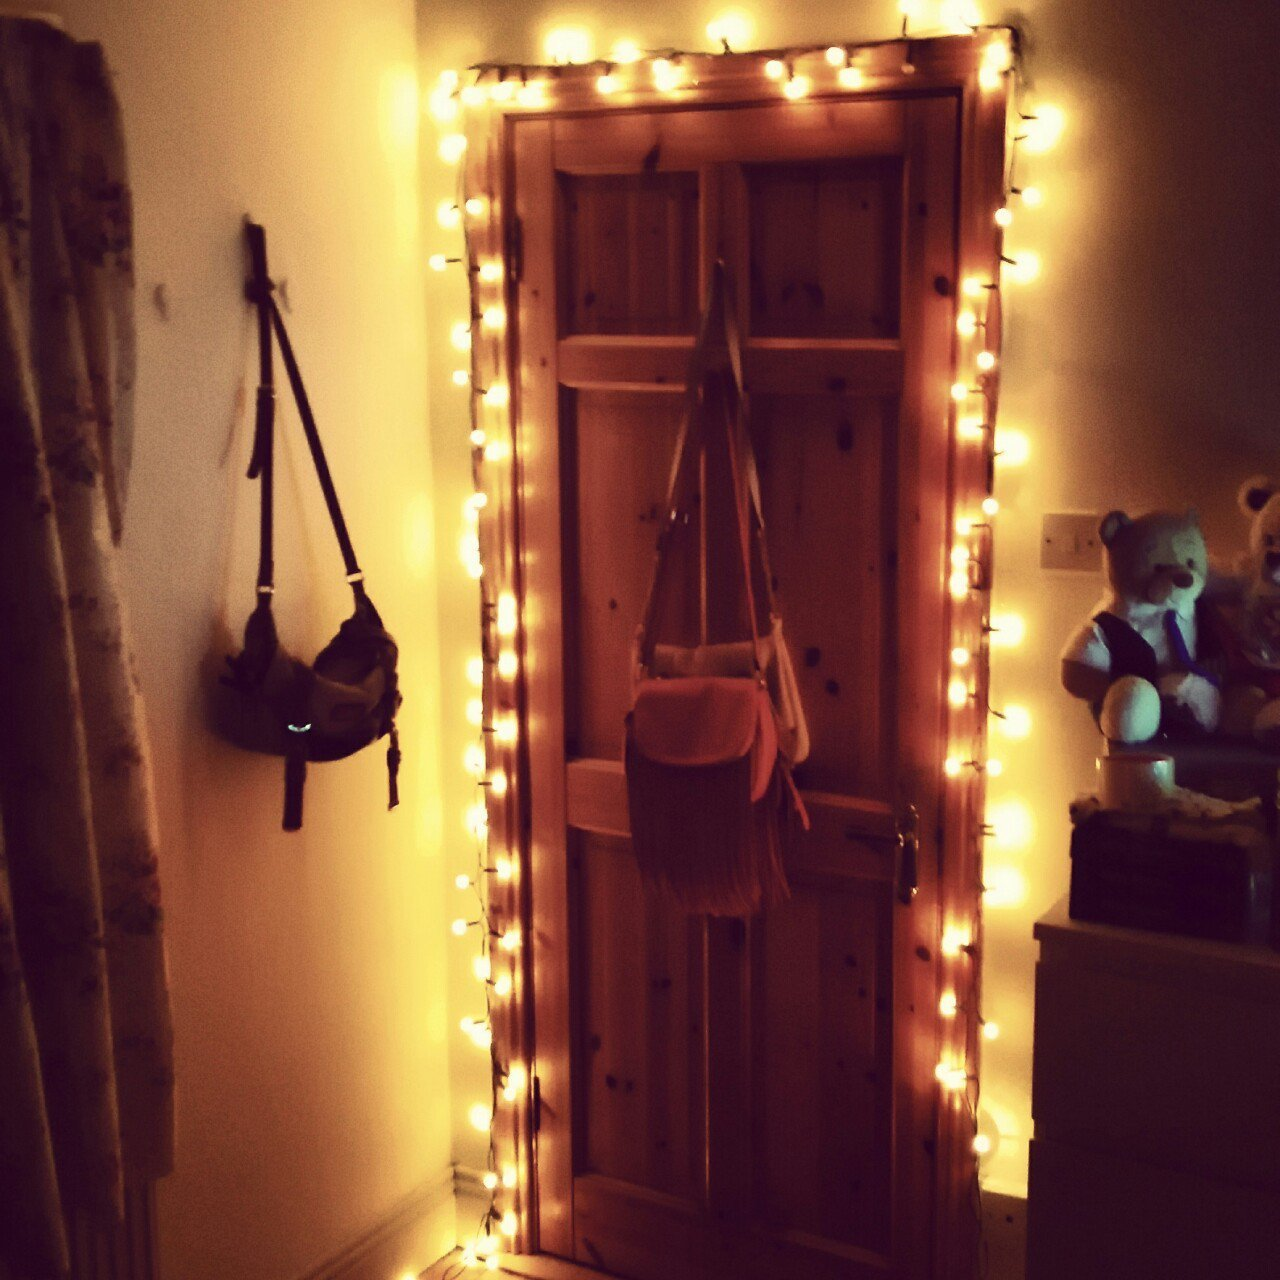 40 Pictures That Prove Fairy Lights Make The World A